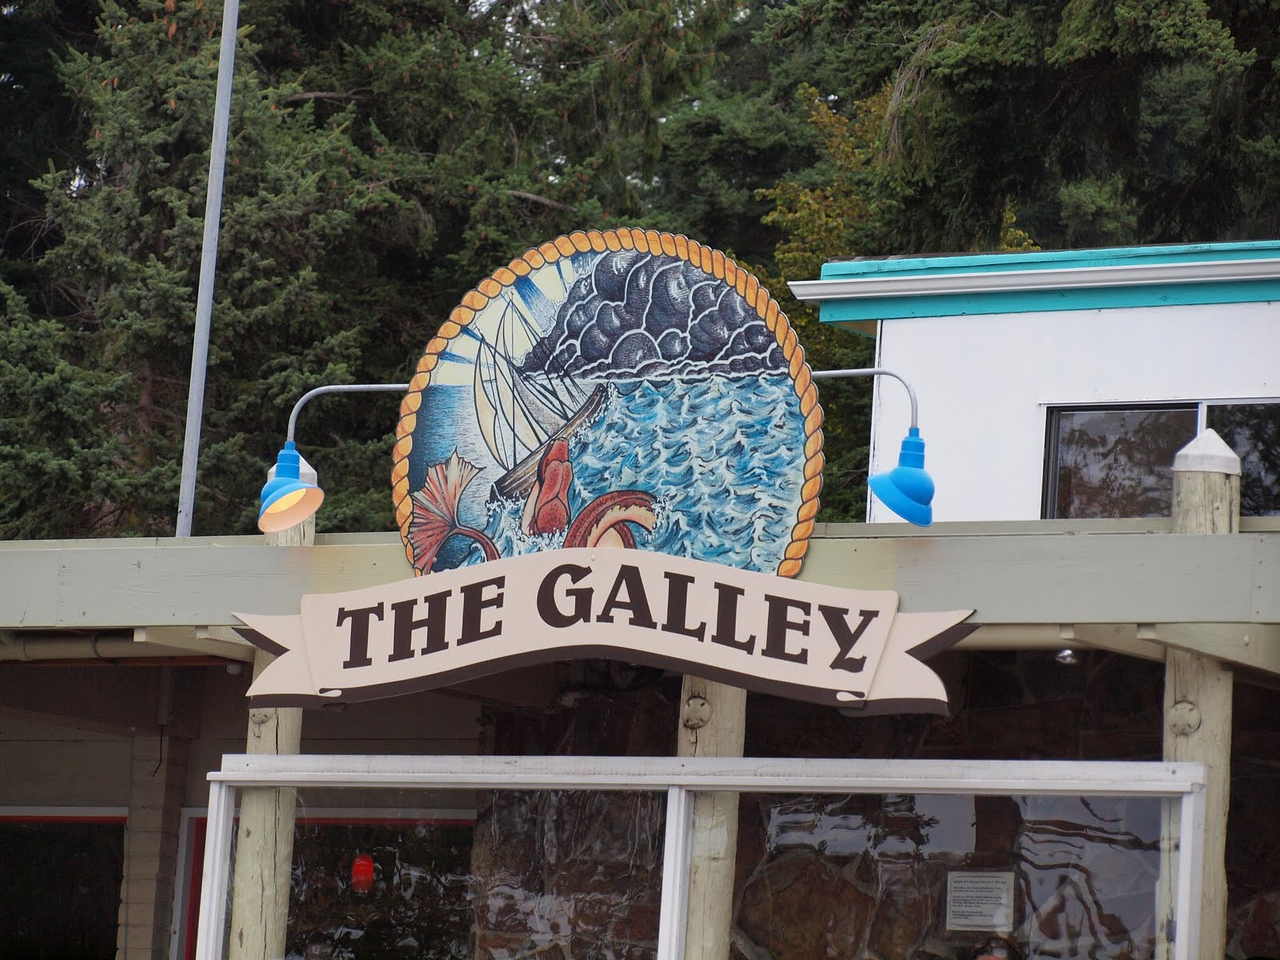 Pub Lunch - Day 4The Galley on Lopez Island